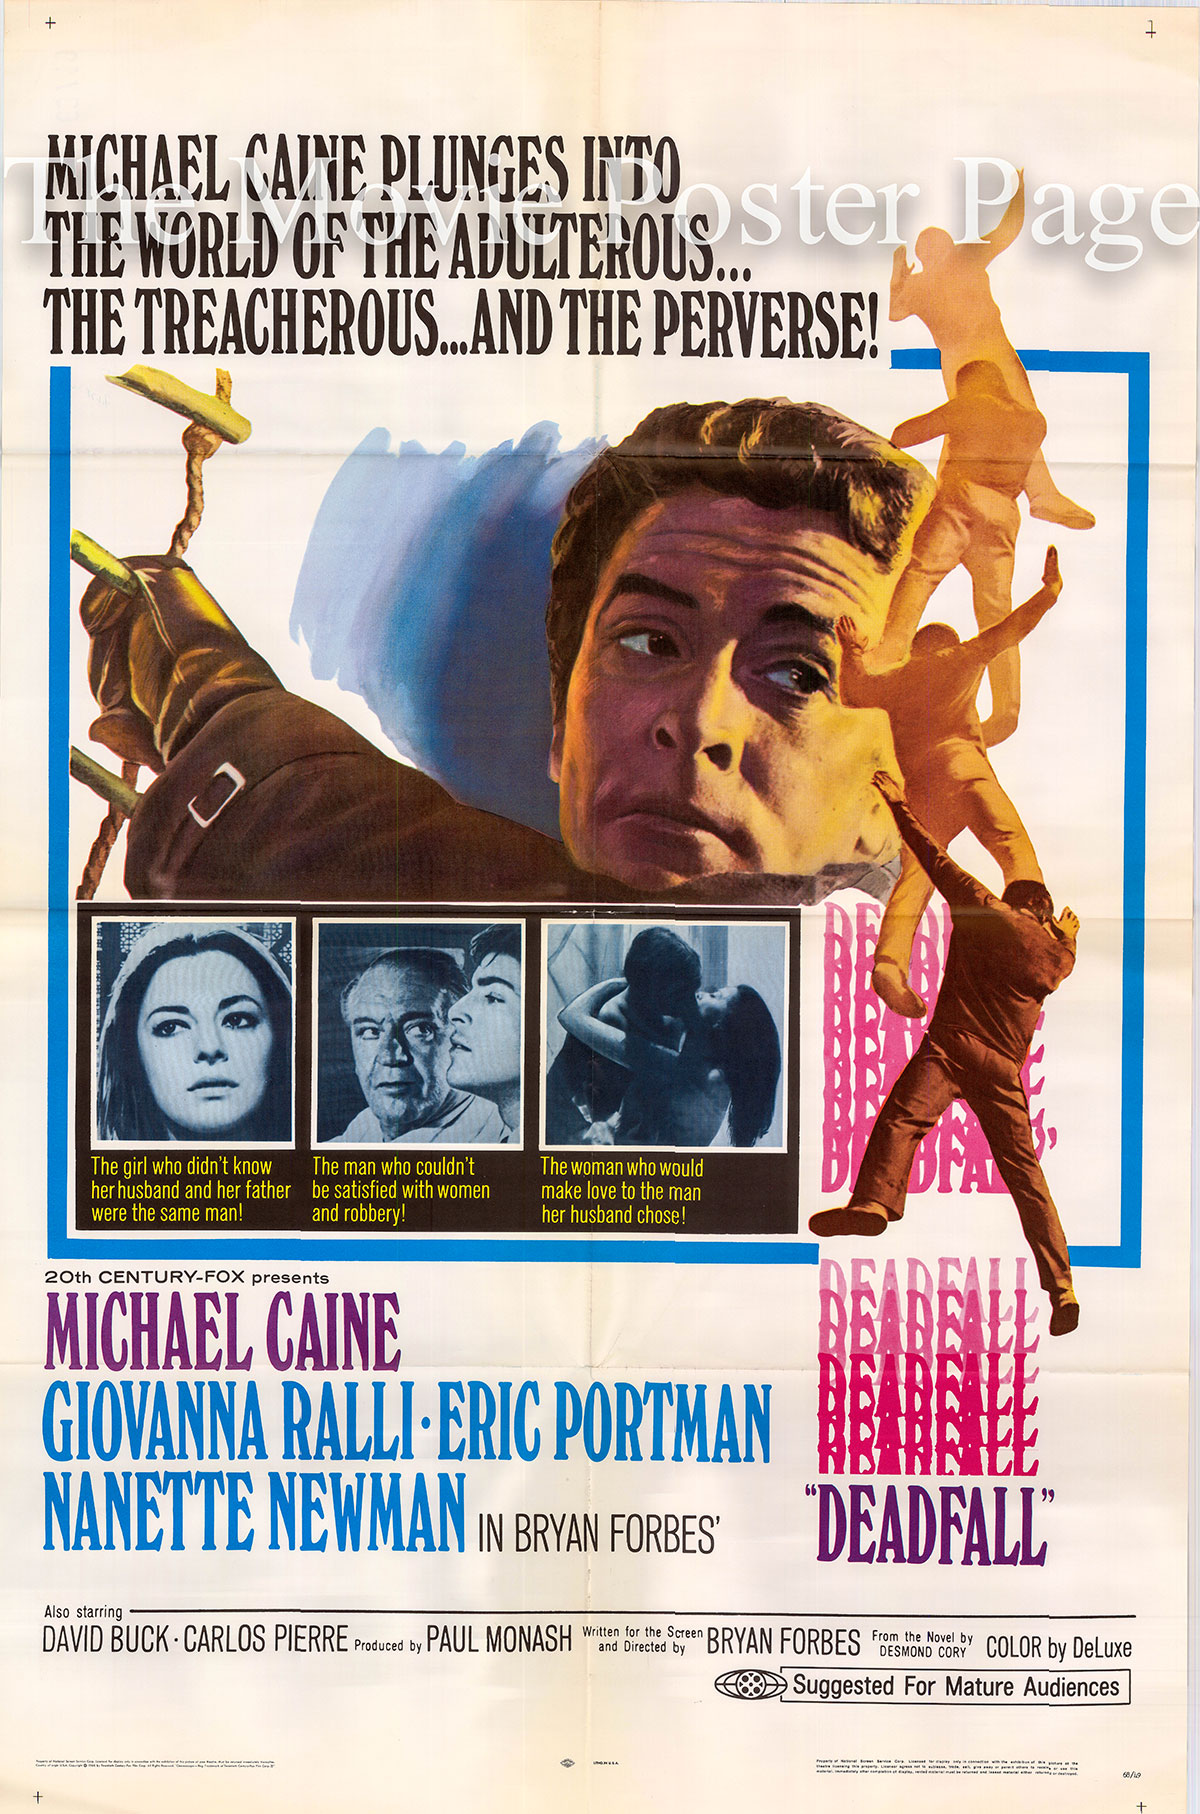 Pictured is a US one-sheet poster for the 1968 Bryan Forbes film Deadfall starring Michael Caine.